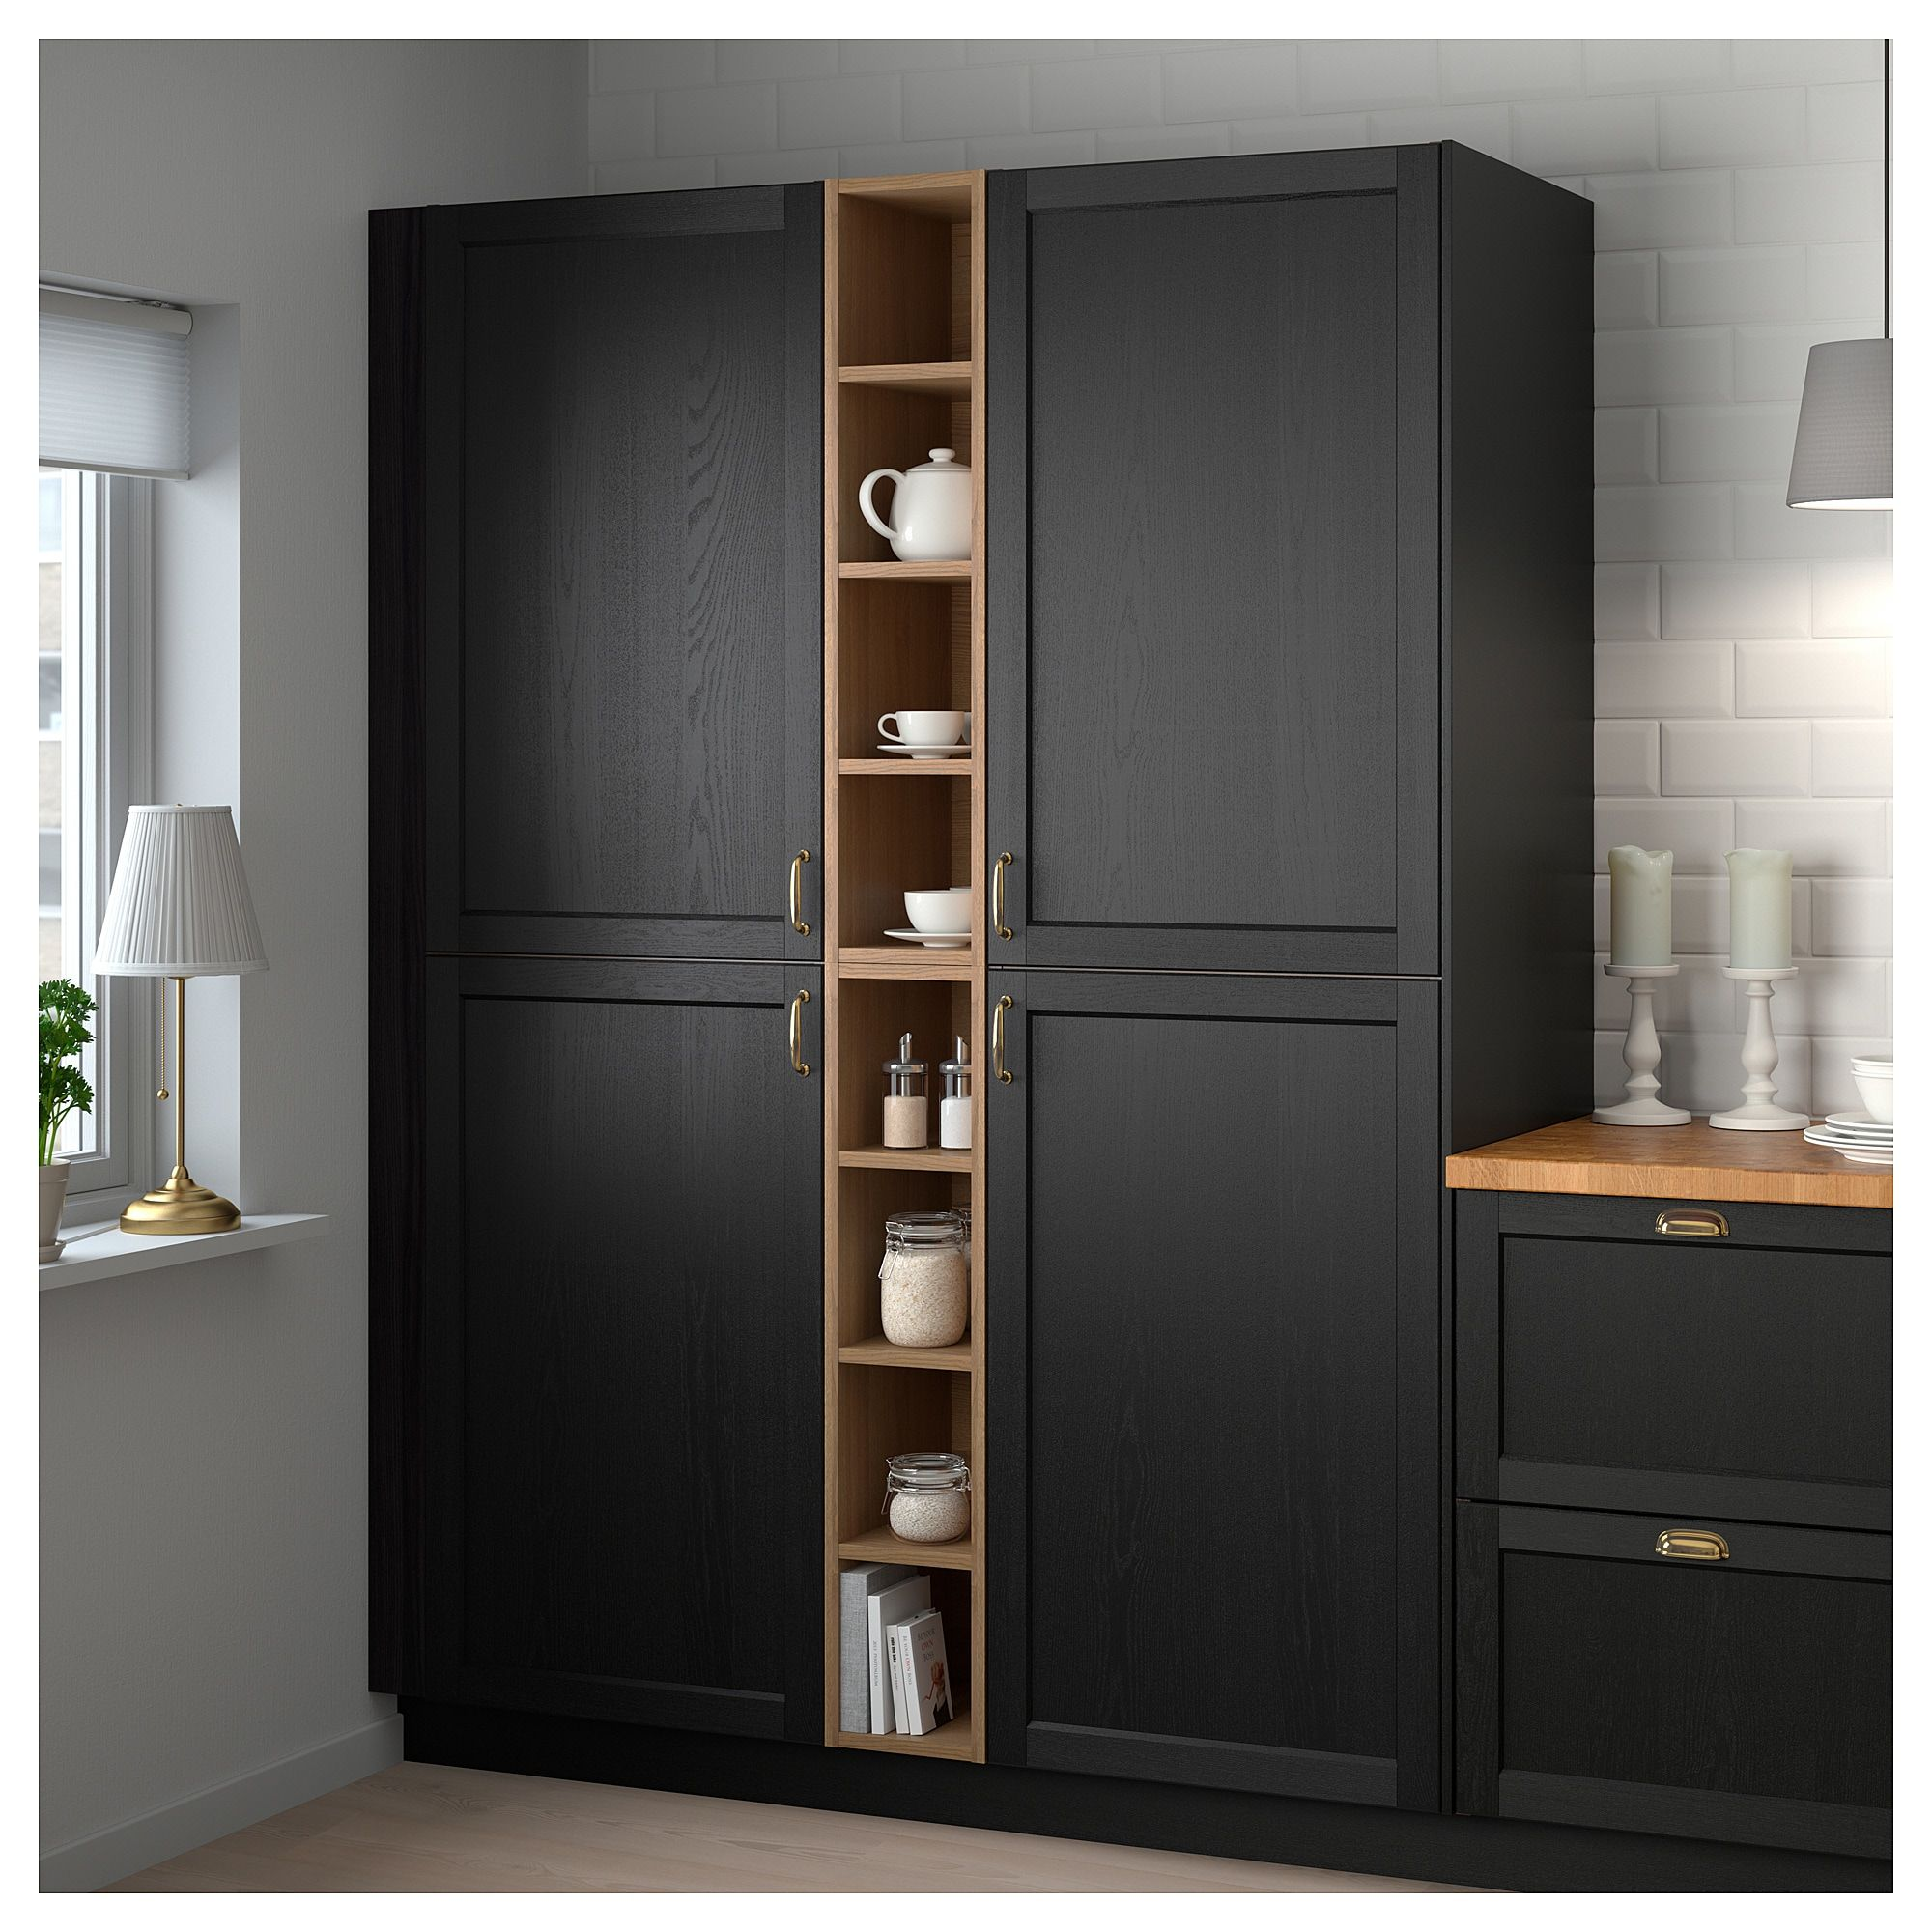 Kitchen Storage Cabinets Ikea: VADHOLMA Open Storage Brown, Stained Ash In 2019